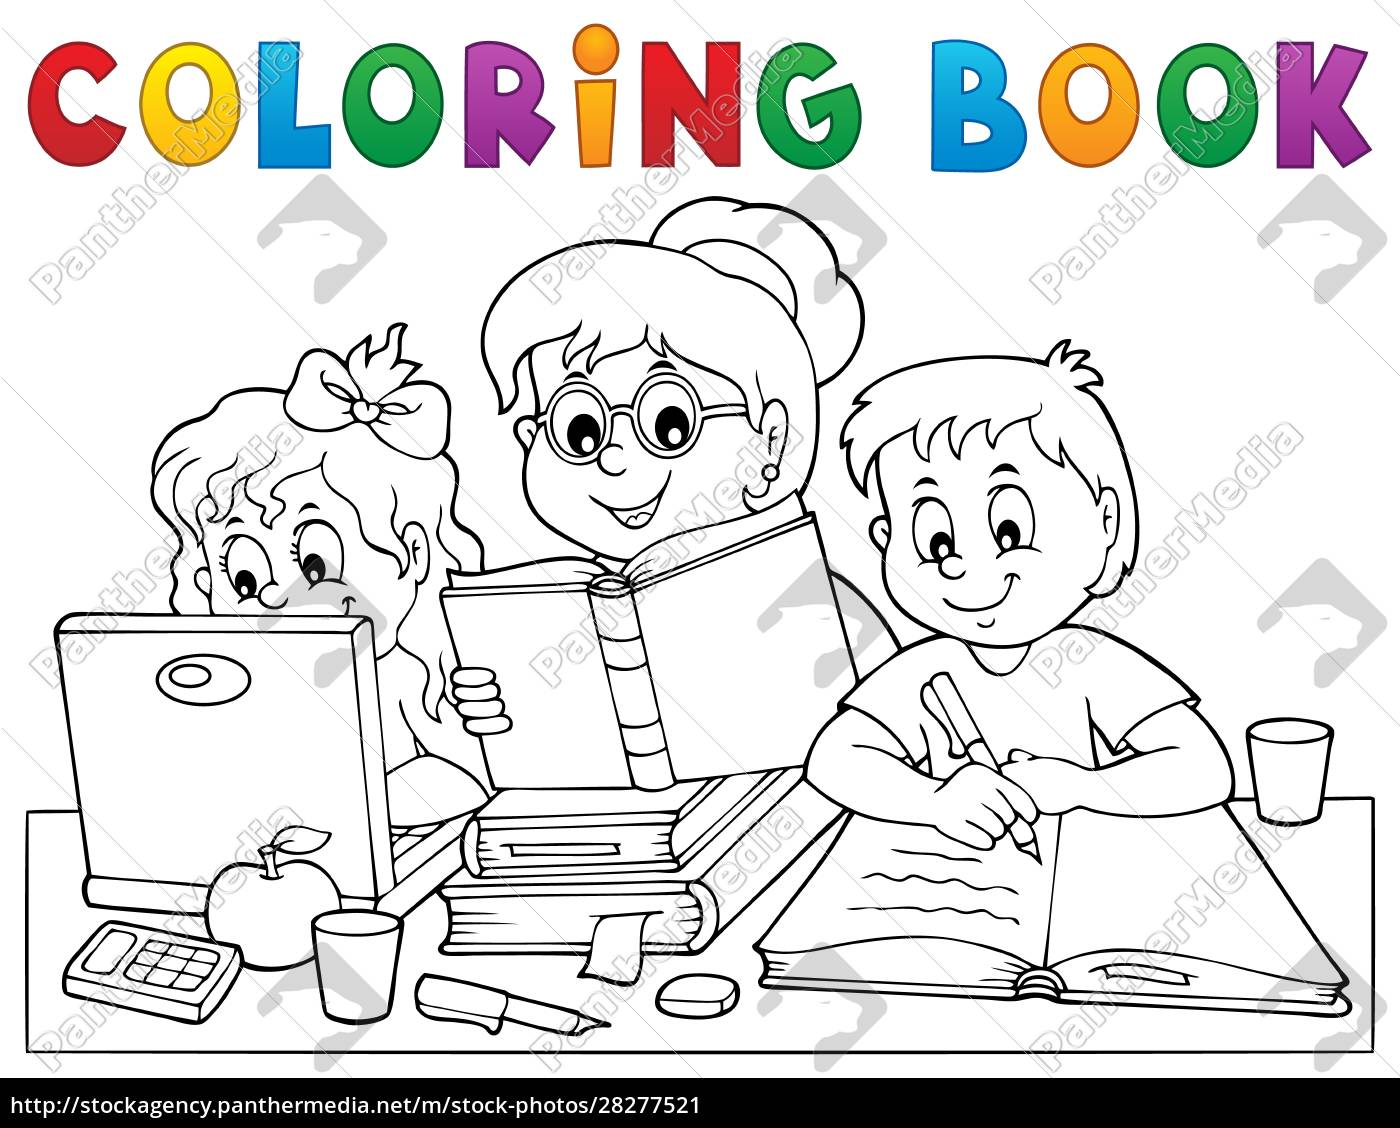 coloring, book, home, schooling, image, 1 - 28277521